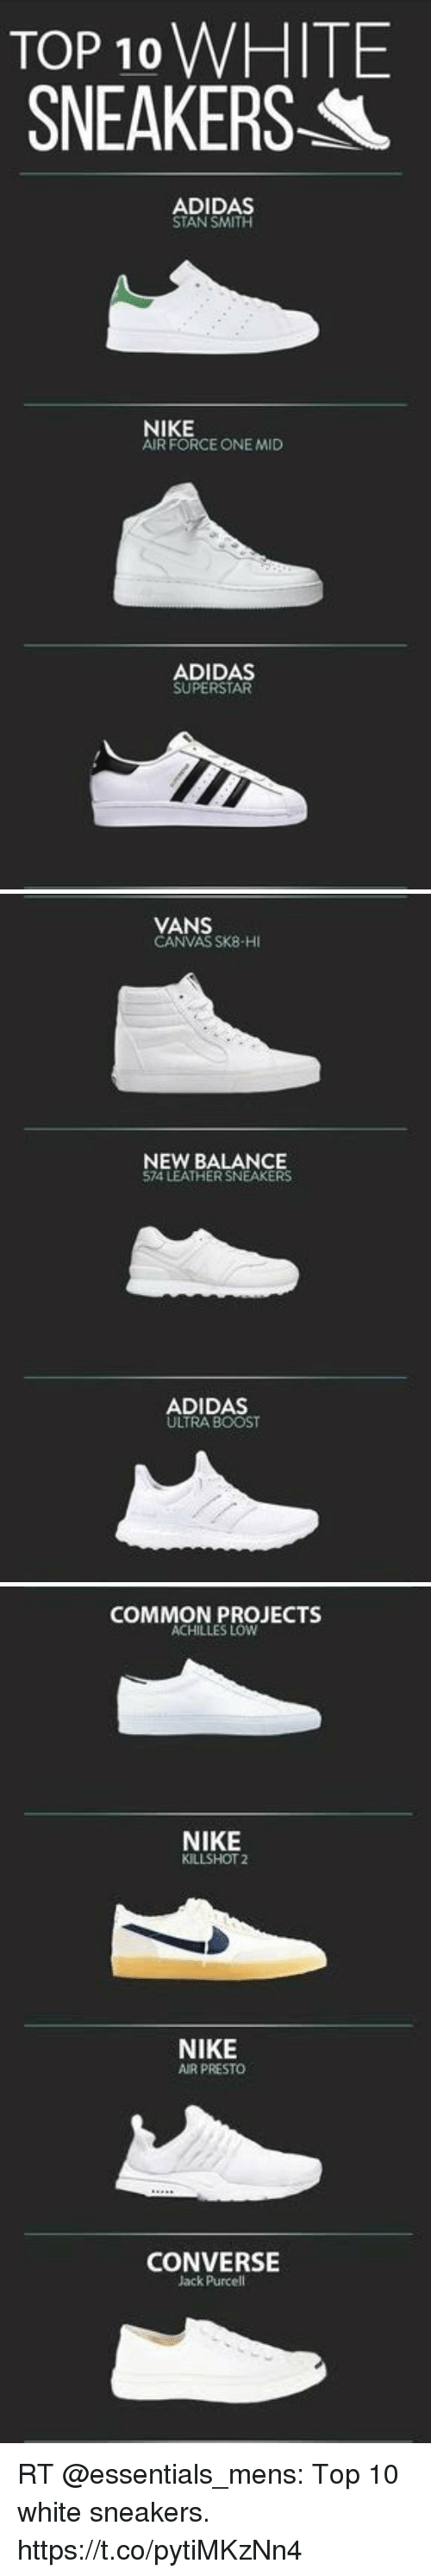 c4b063b4306d TOP 10 WHITE SNEAKERS ADIDAS STAN SMITH NIKE AIR FORCE ONE MID ...